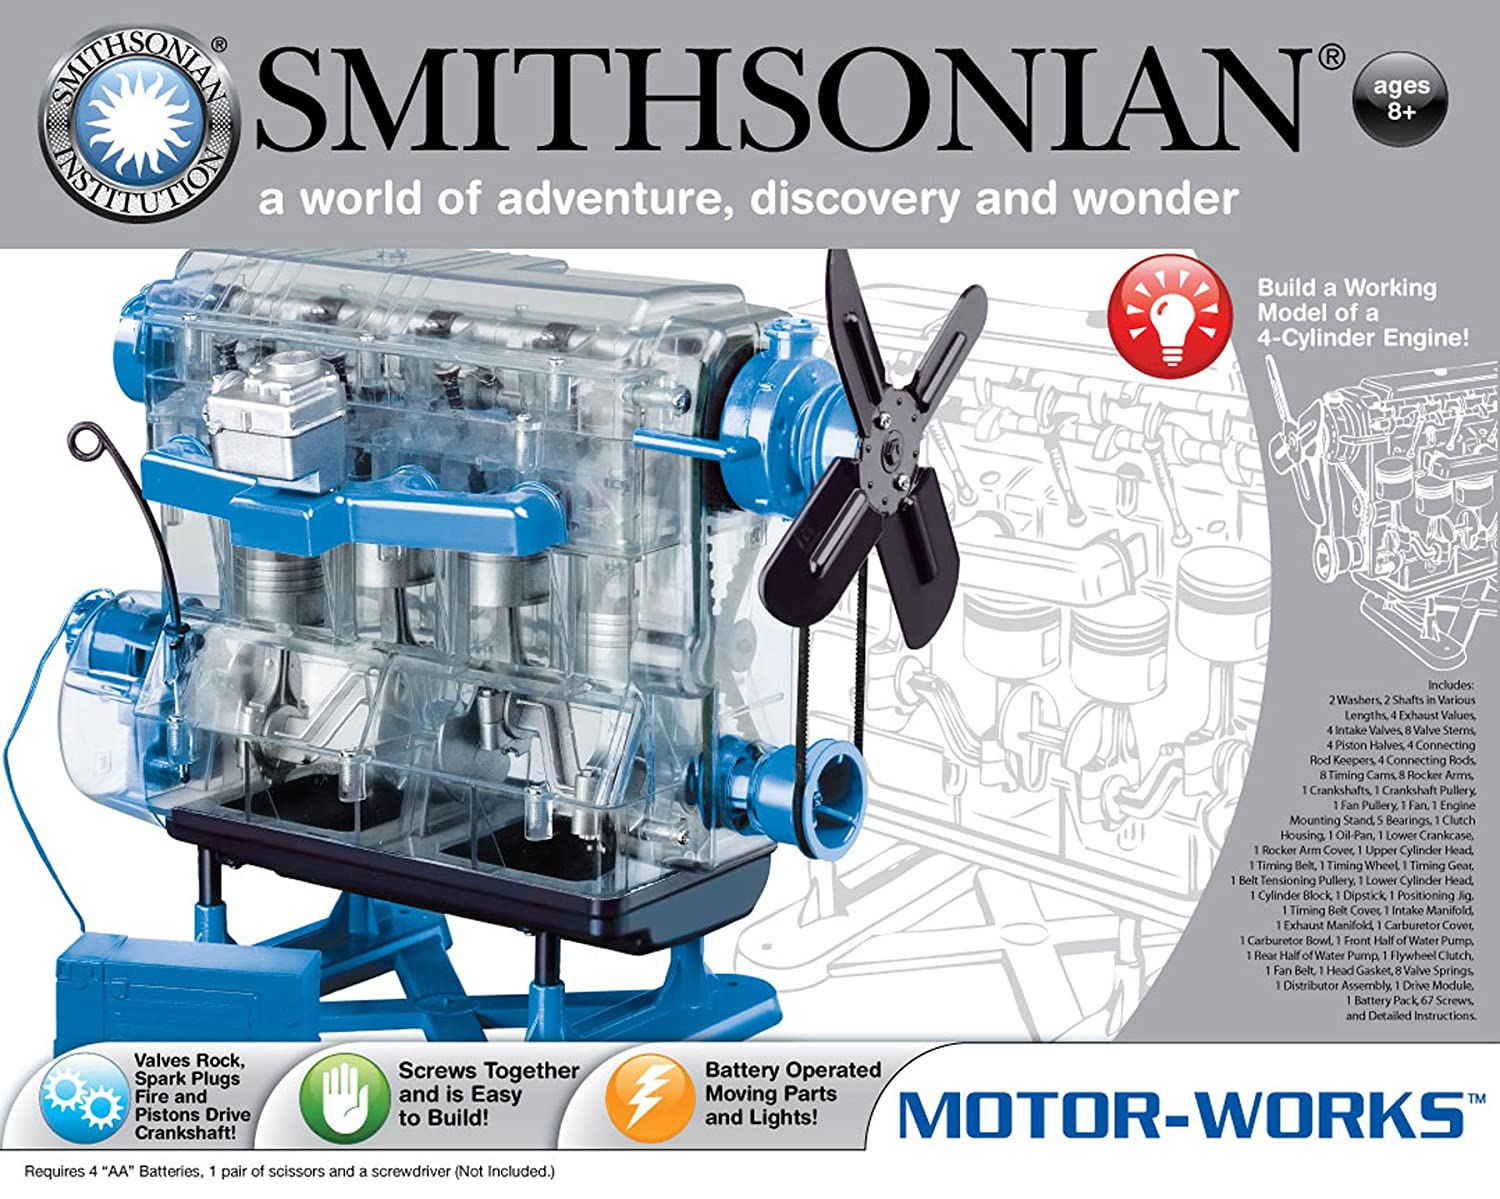 Amazon.com: Smithsonian Motor-Works: Toys & Games